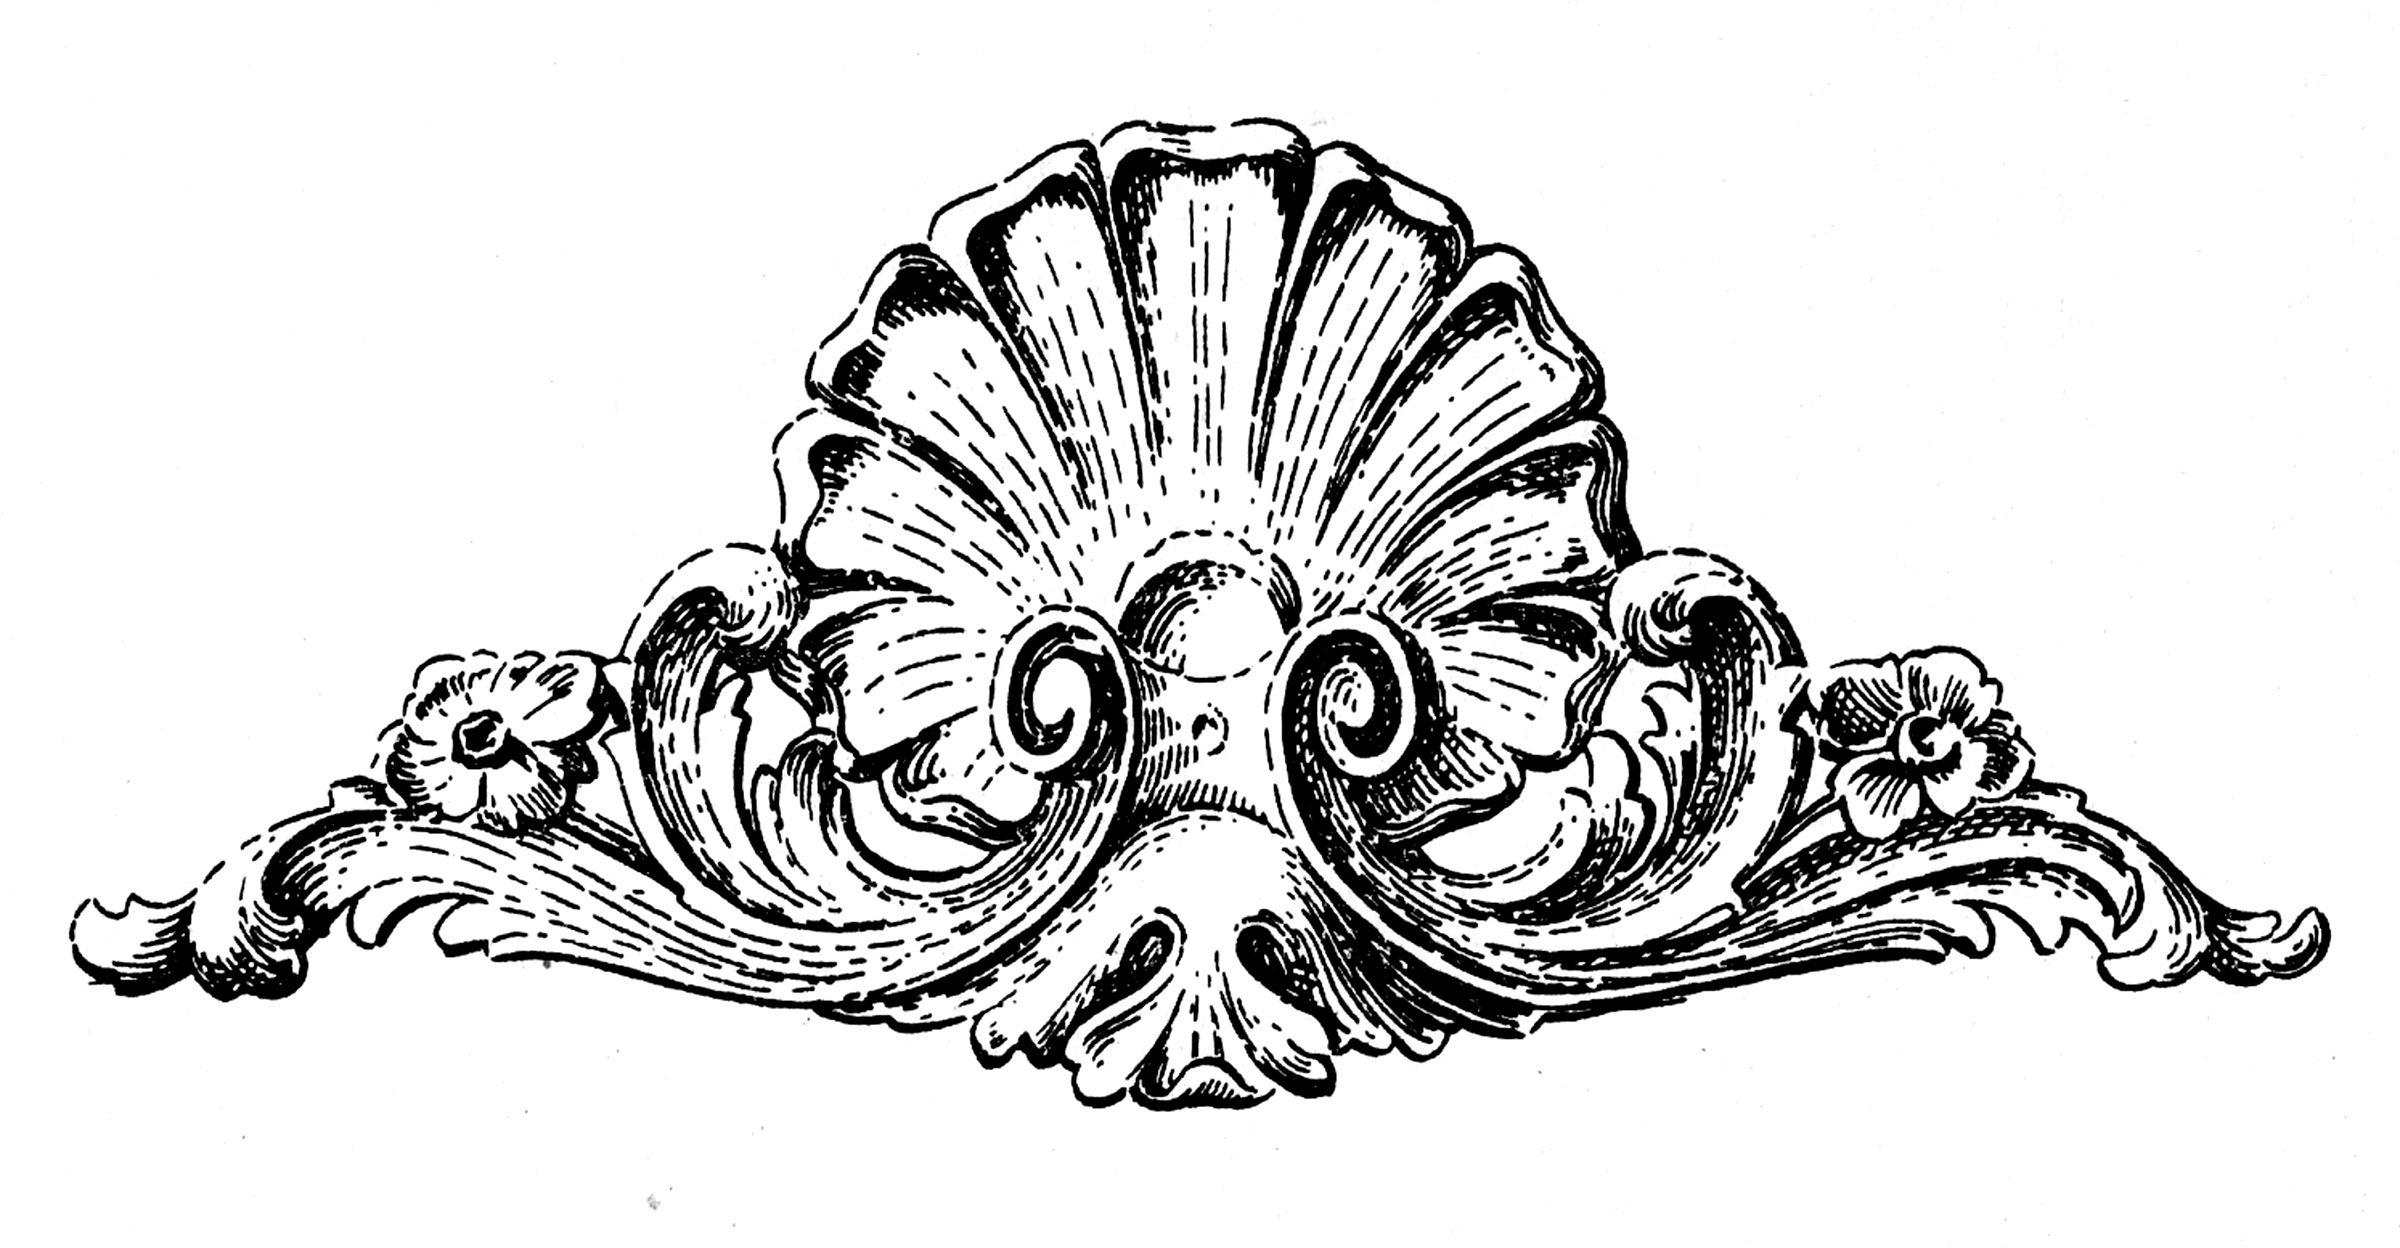 Shell pattern clipart victorian vector library download 10 Ornamental Shell Clipart Images - The Graphics Fairy vector library download